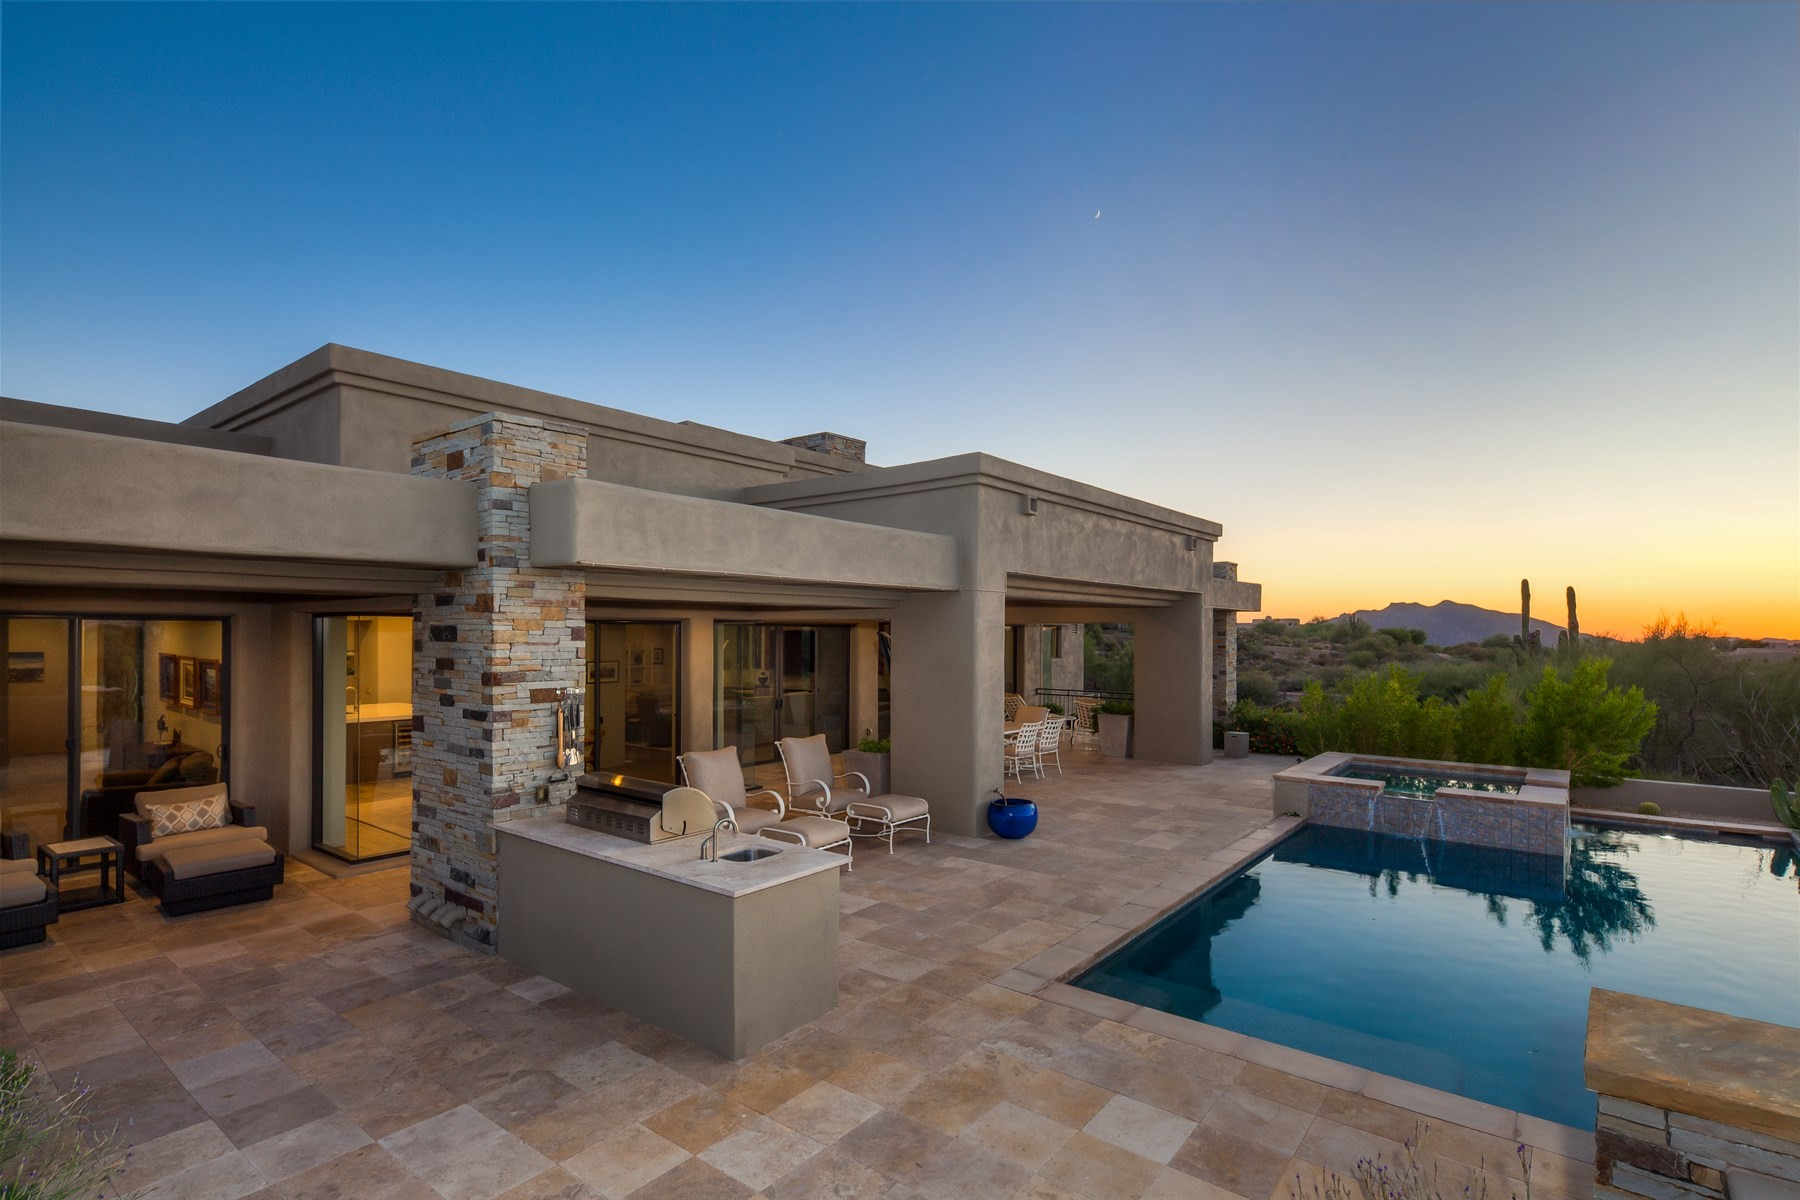 Single Family Home for Sale at Charming contemporary home in Gambel Quail 9420 E Sundance Trl, Scottsdale, Arizona, 85262 United States